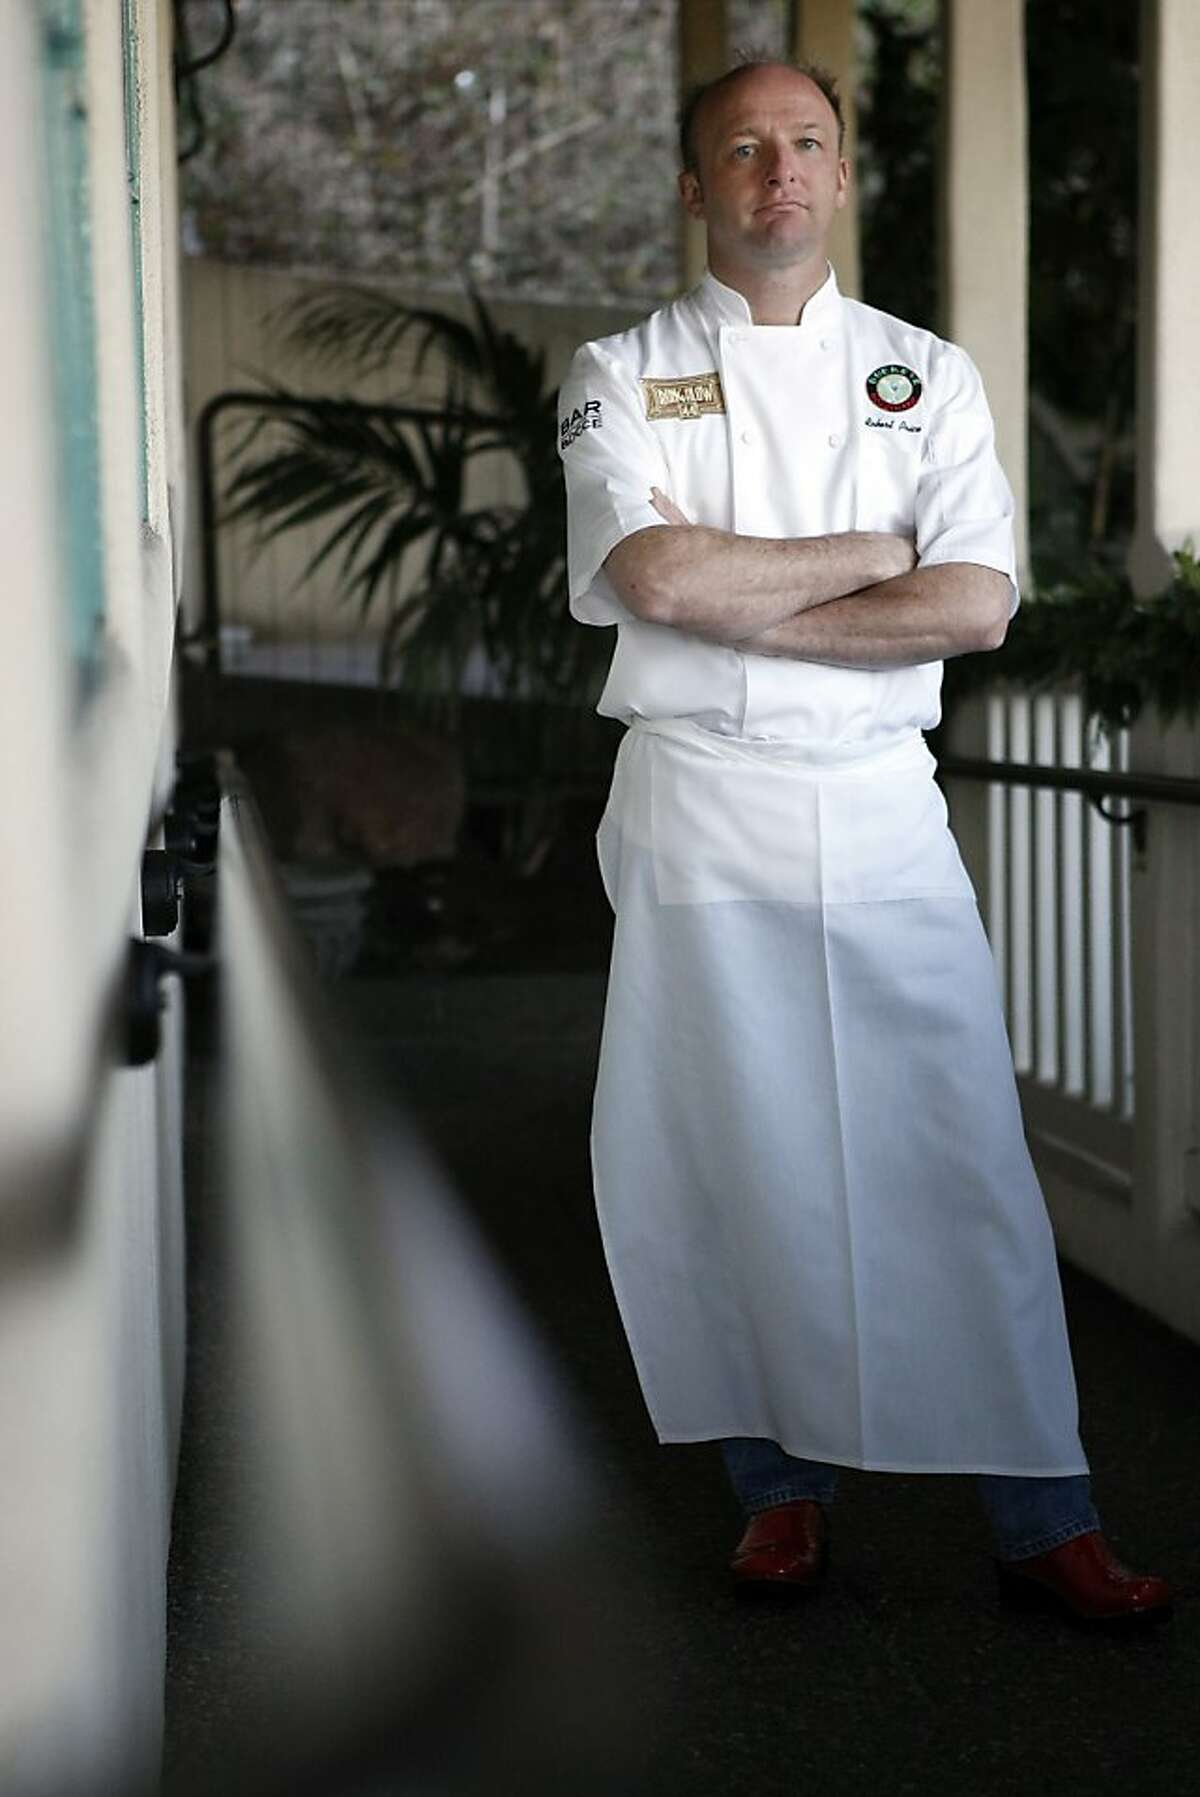 Chef Robert Price poses for a portrait at Buckeye Roadhouse restaurant in Mill Valley, CA, Tuesday, December 7, 2013.